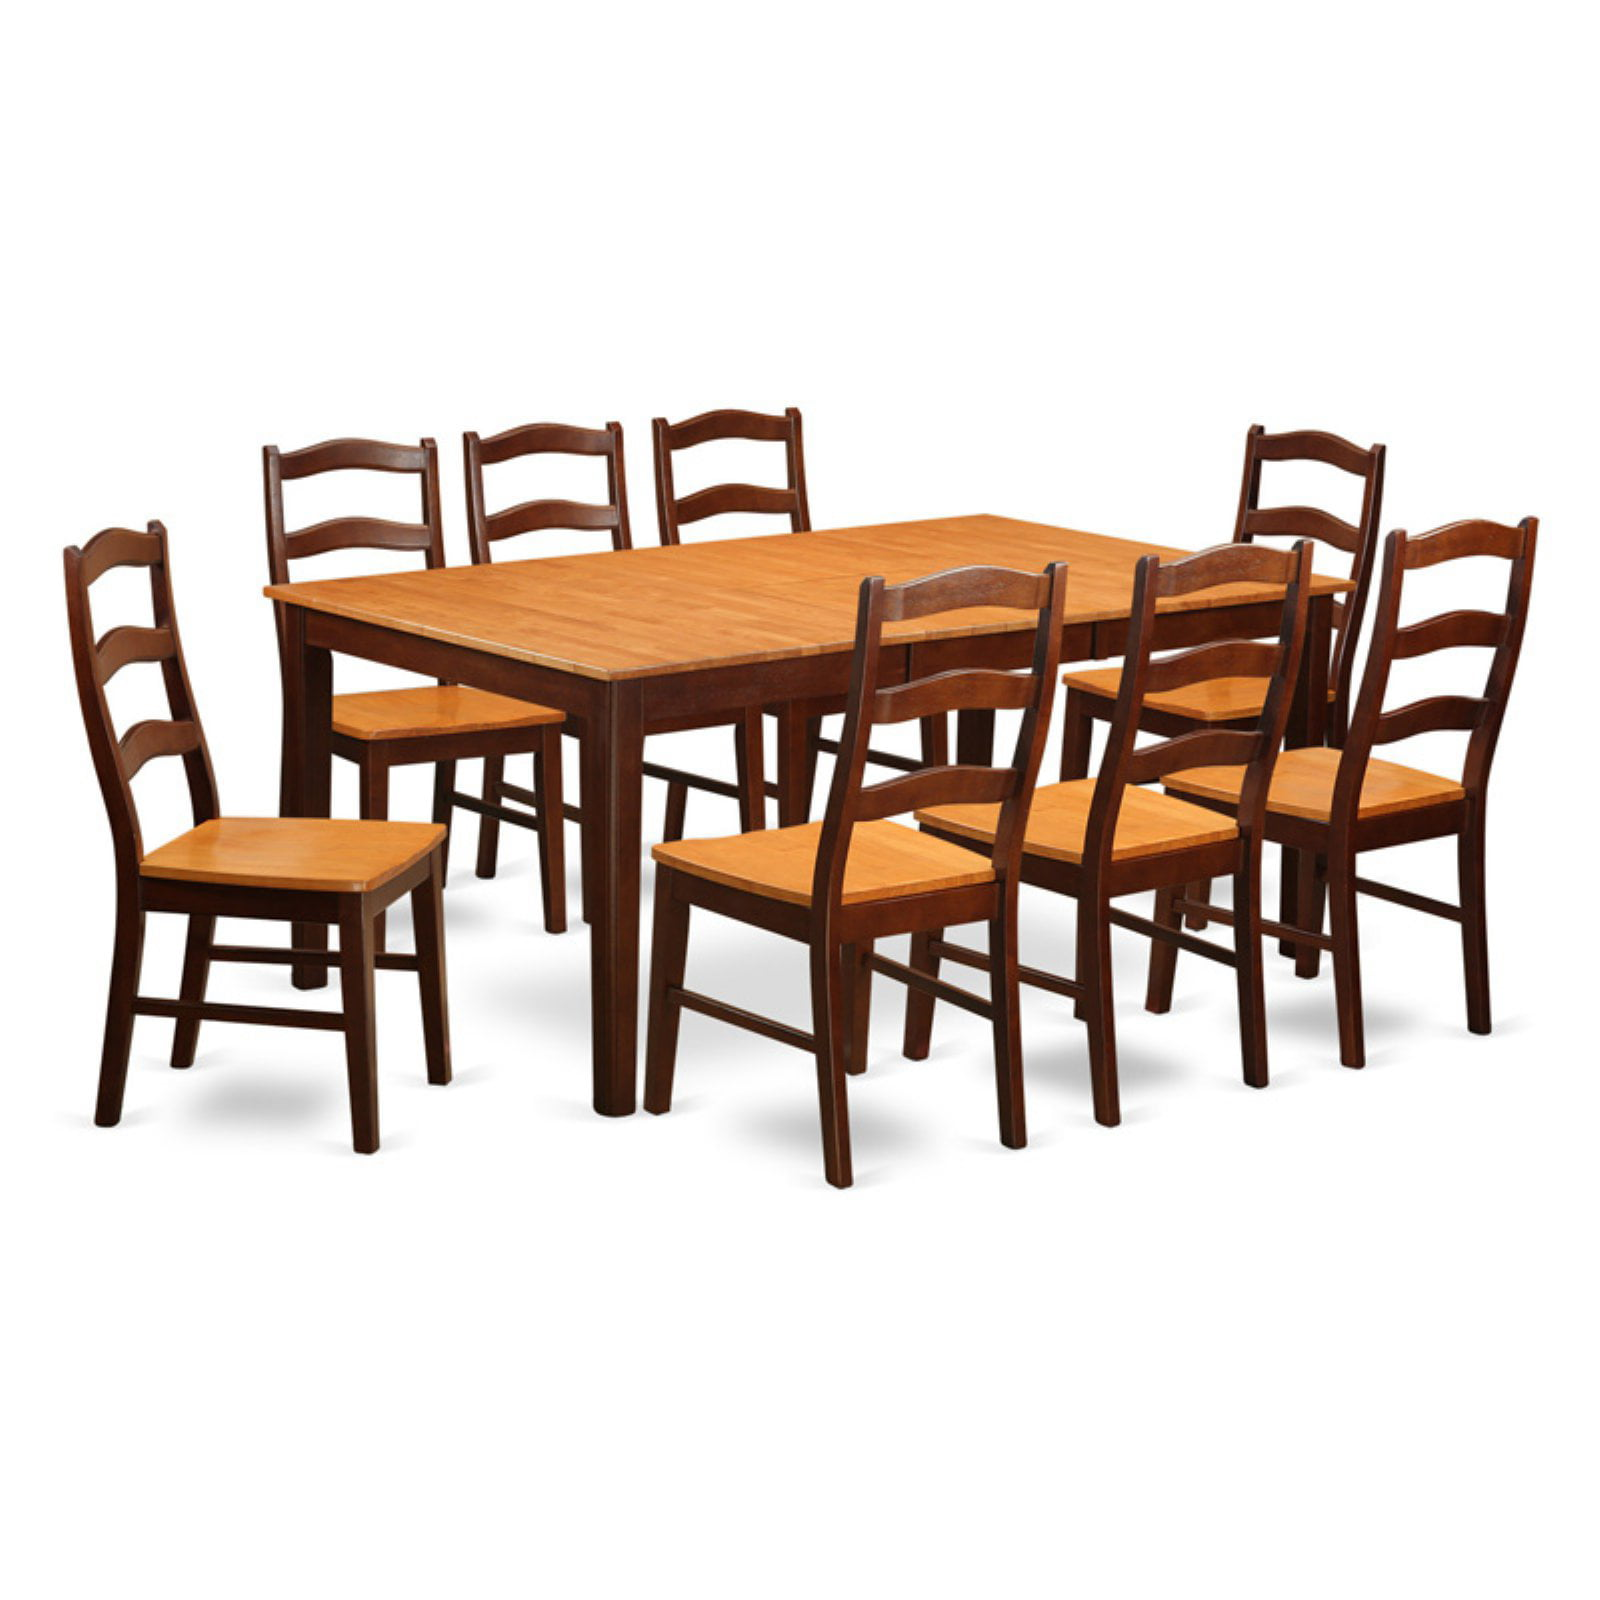 Dining Sets For 8. Dining Room Sets   Walmart com